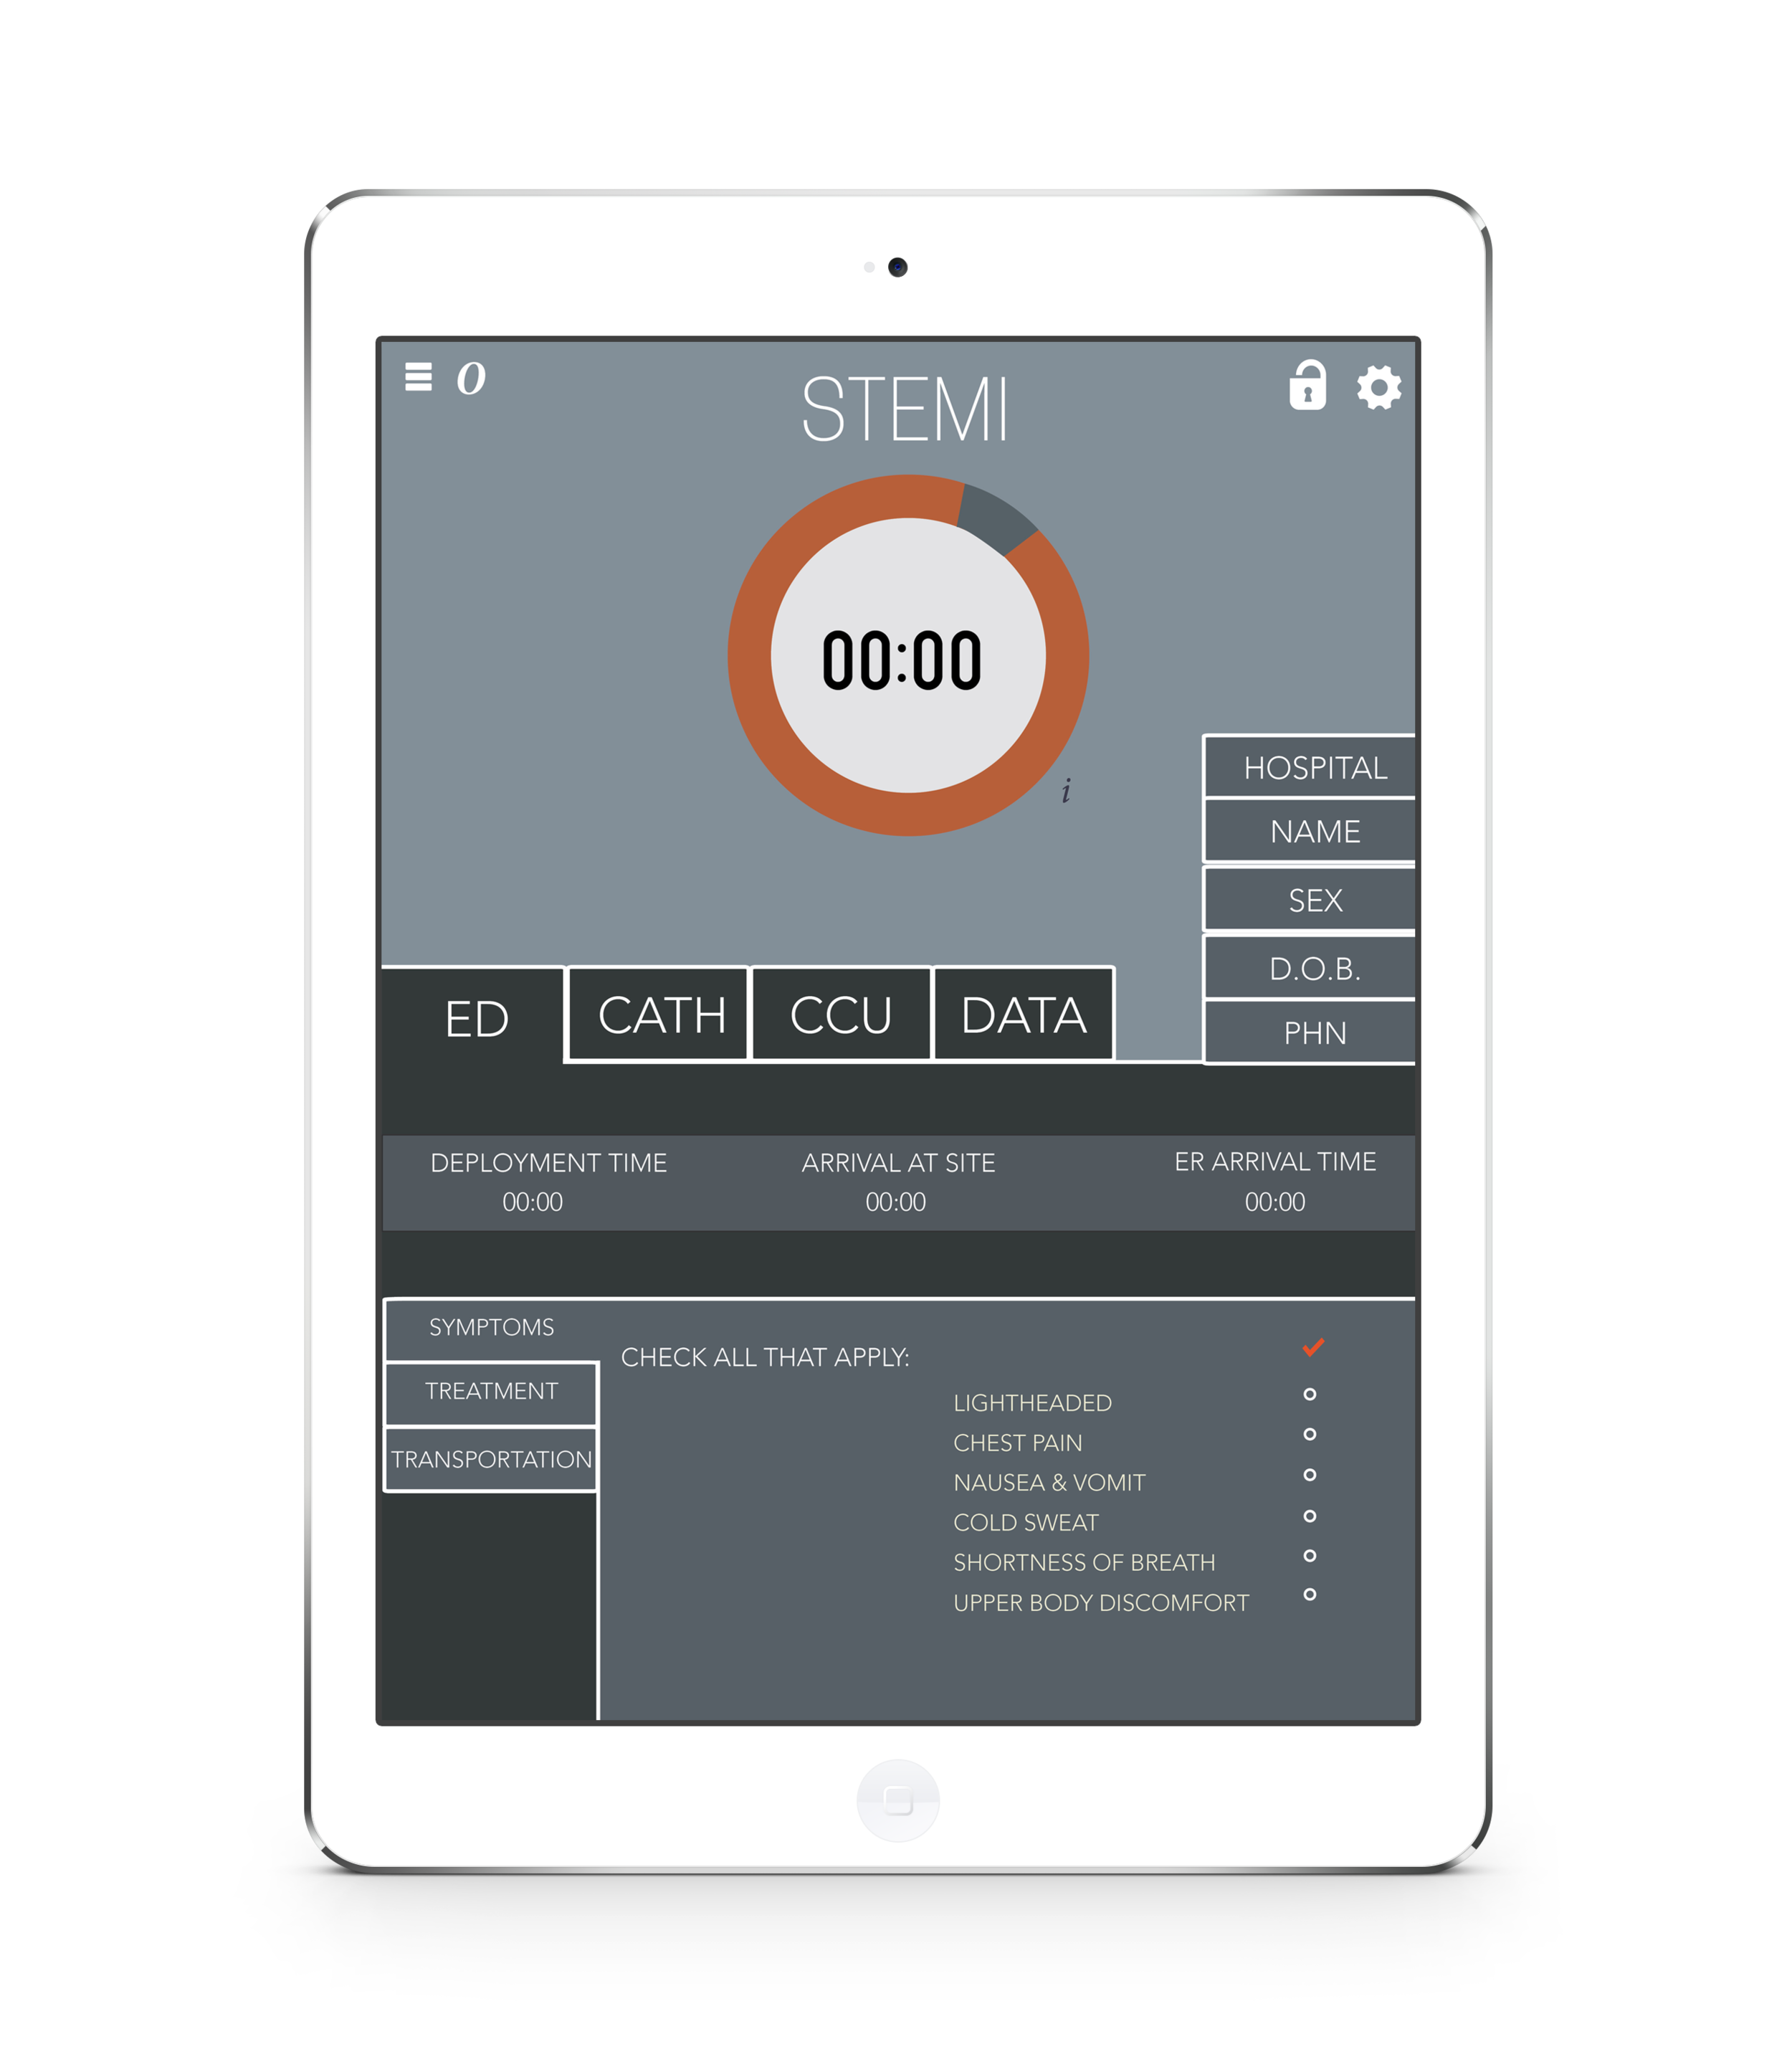 - The STEMI App is designed to work alongside the patient as he or she is treated for STEMI. The STEMI App is accessed by the Emergency Department where they can document the patient's symptoms and time elapsed between transportation and treatment.